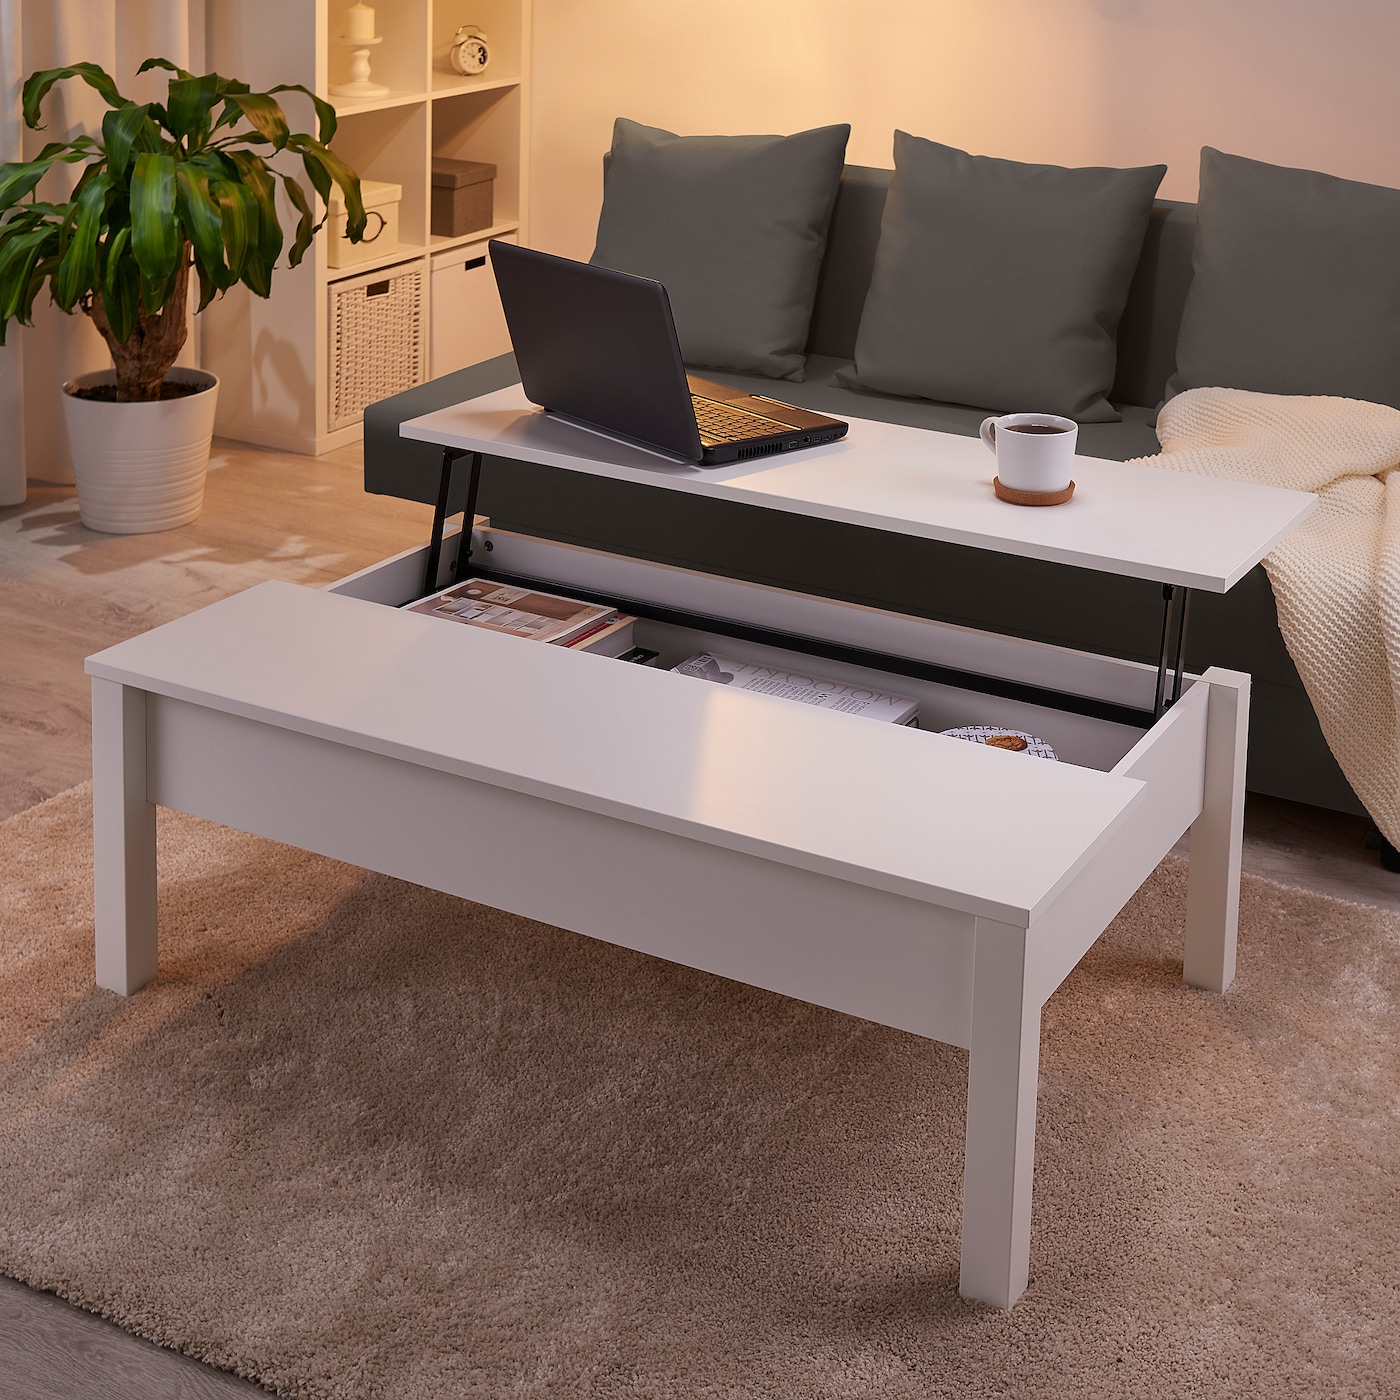 - TRULSTORP Coffee Table, White, 45 1/4x27 1/2